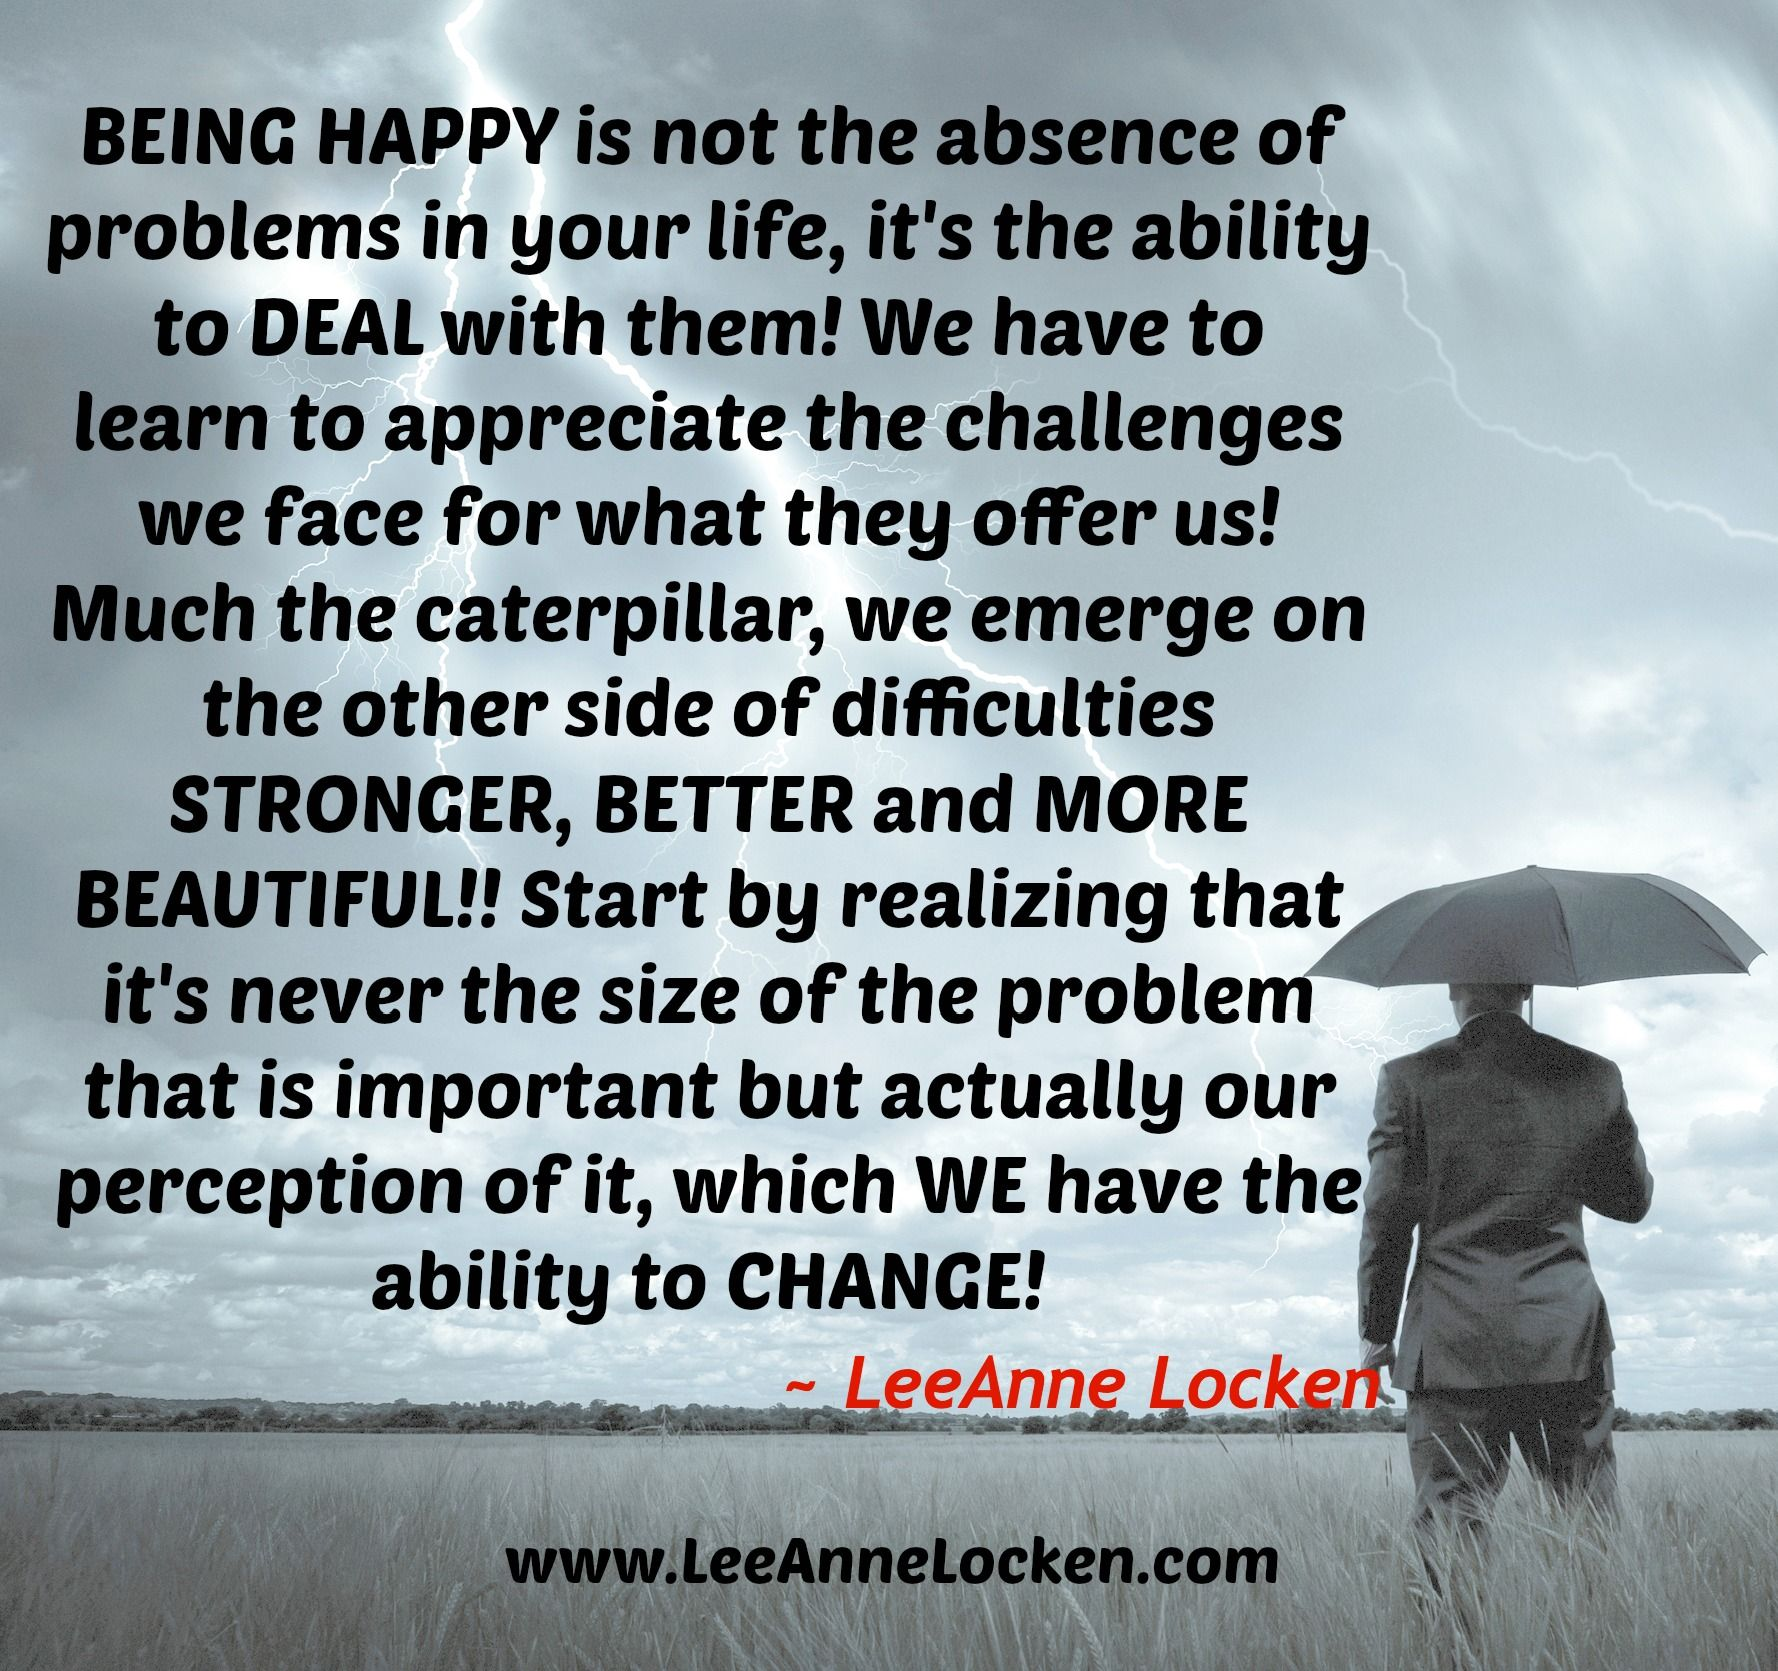 Quotes Motivation And Inspiration: Dealing With #Difficulties? Here's How To Find #Happiness